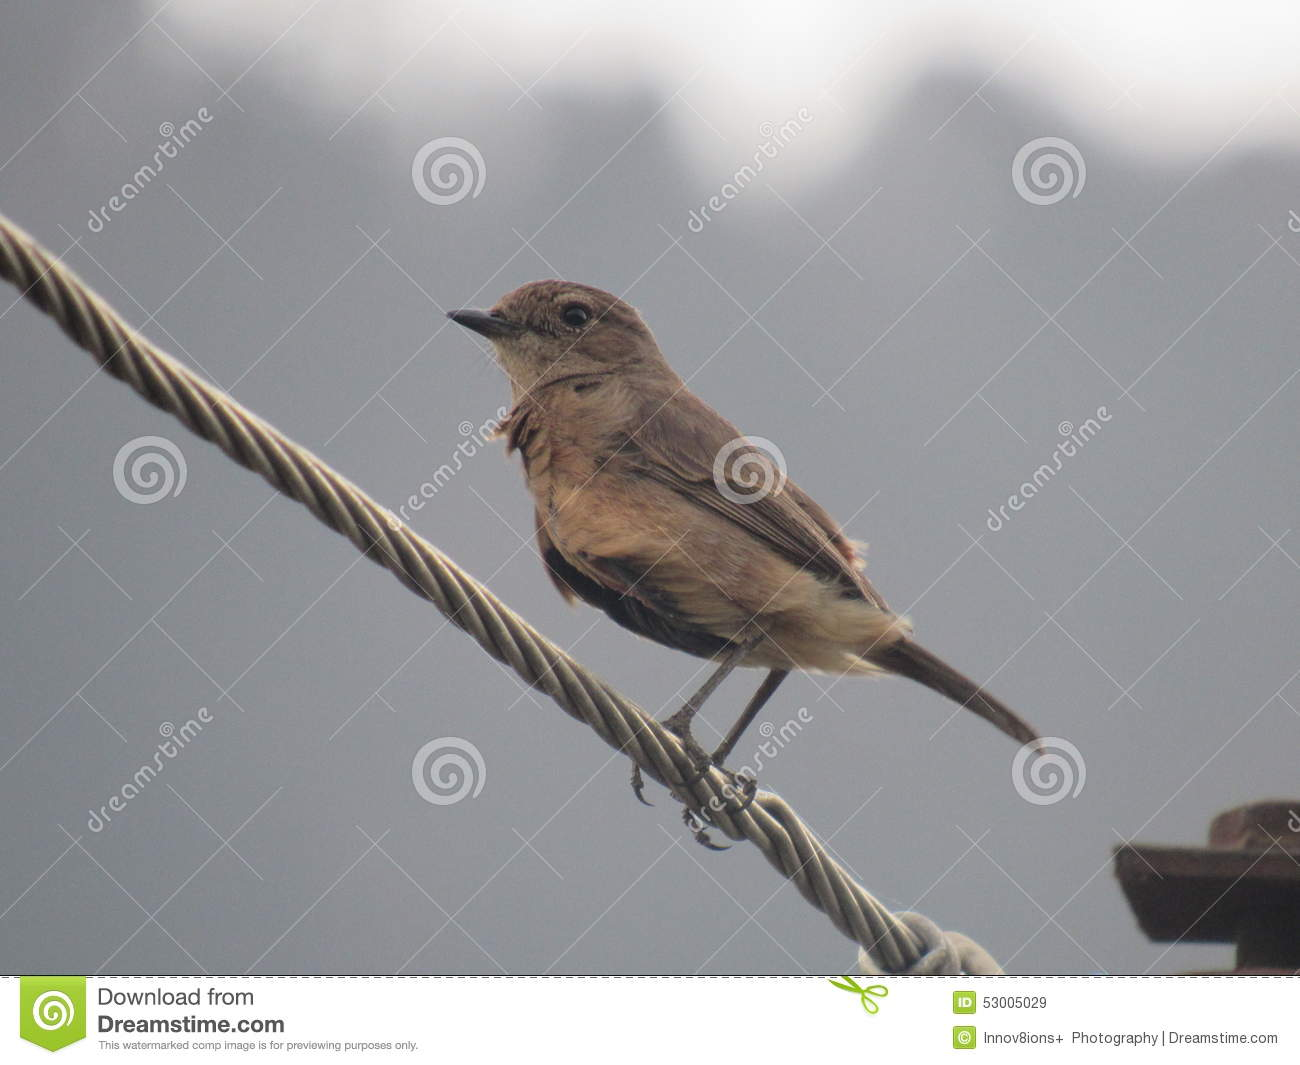 Brown Bird stock image. Image of wire, brown, tailed - 53005029